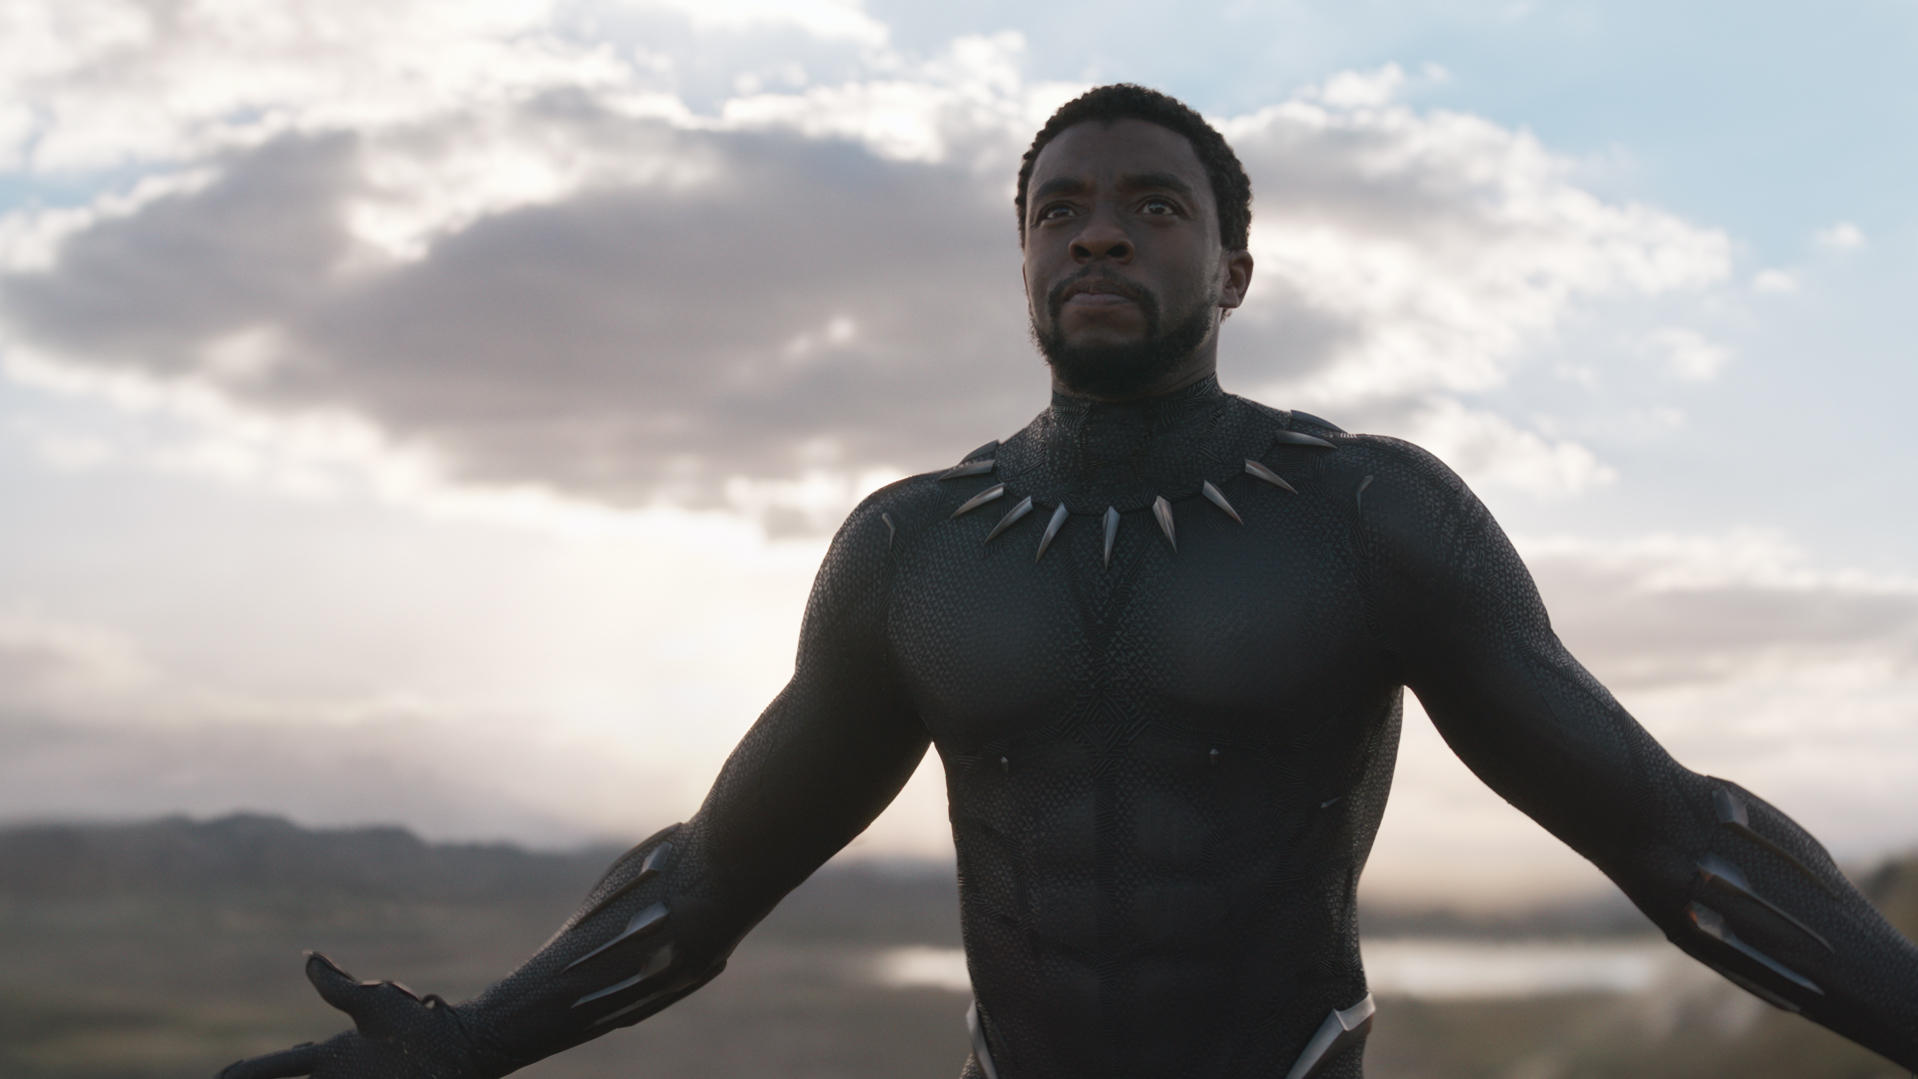 Marvel's Black Panther becomes the 10th biggest movie of all time